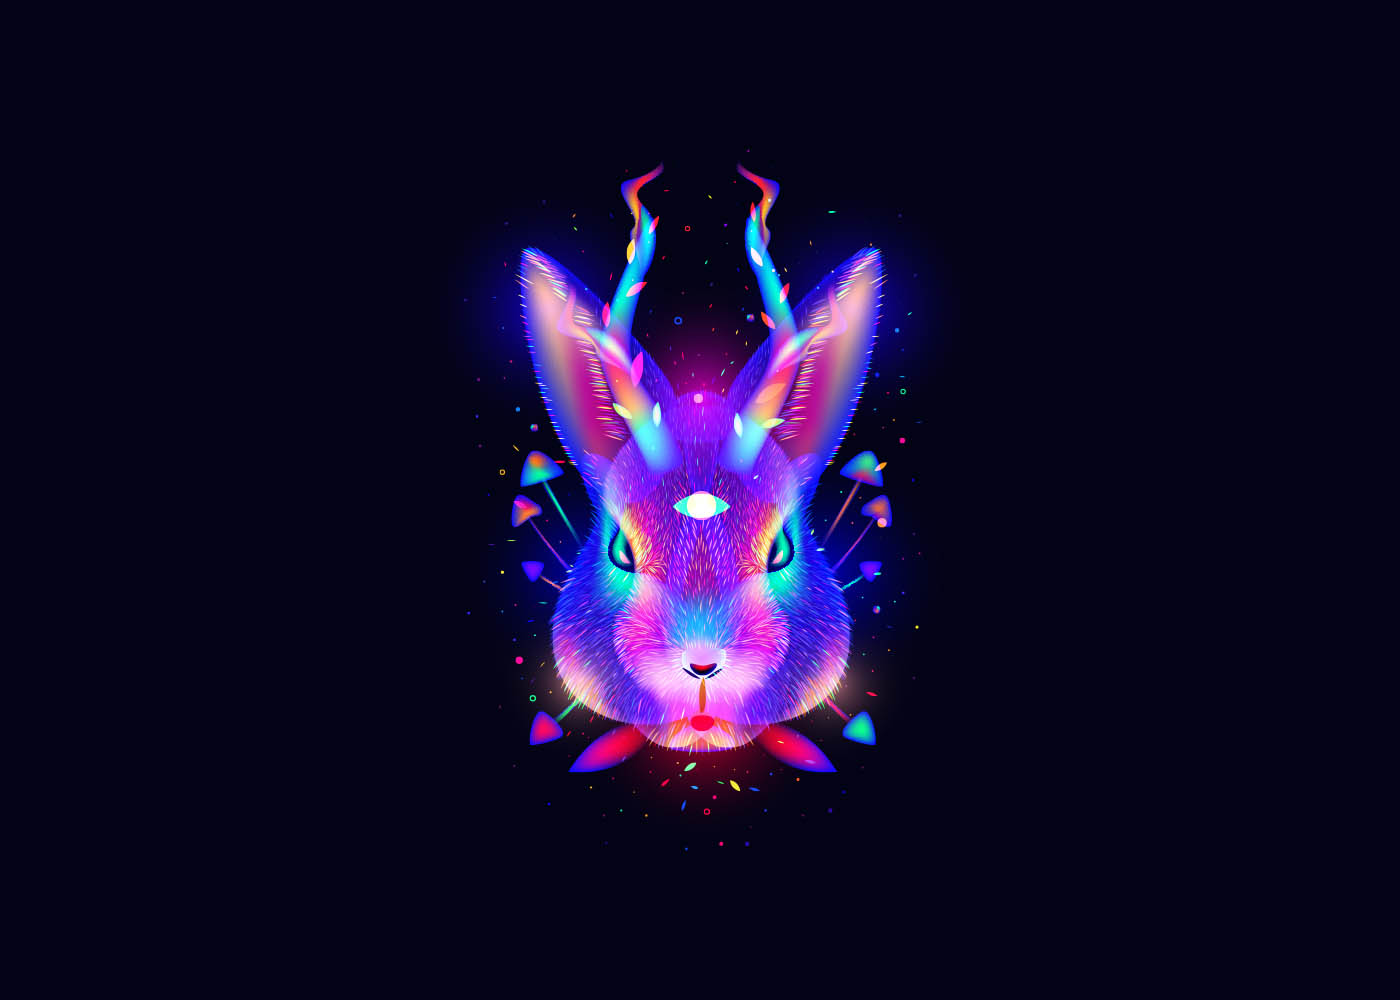 digital art rabbit by ilya shapko